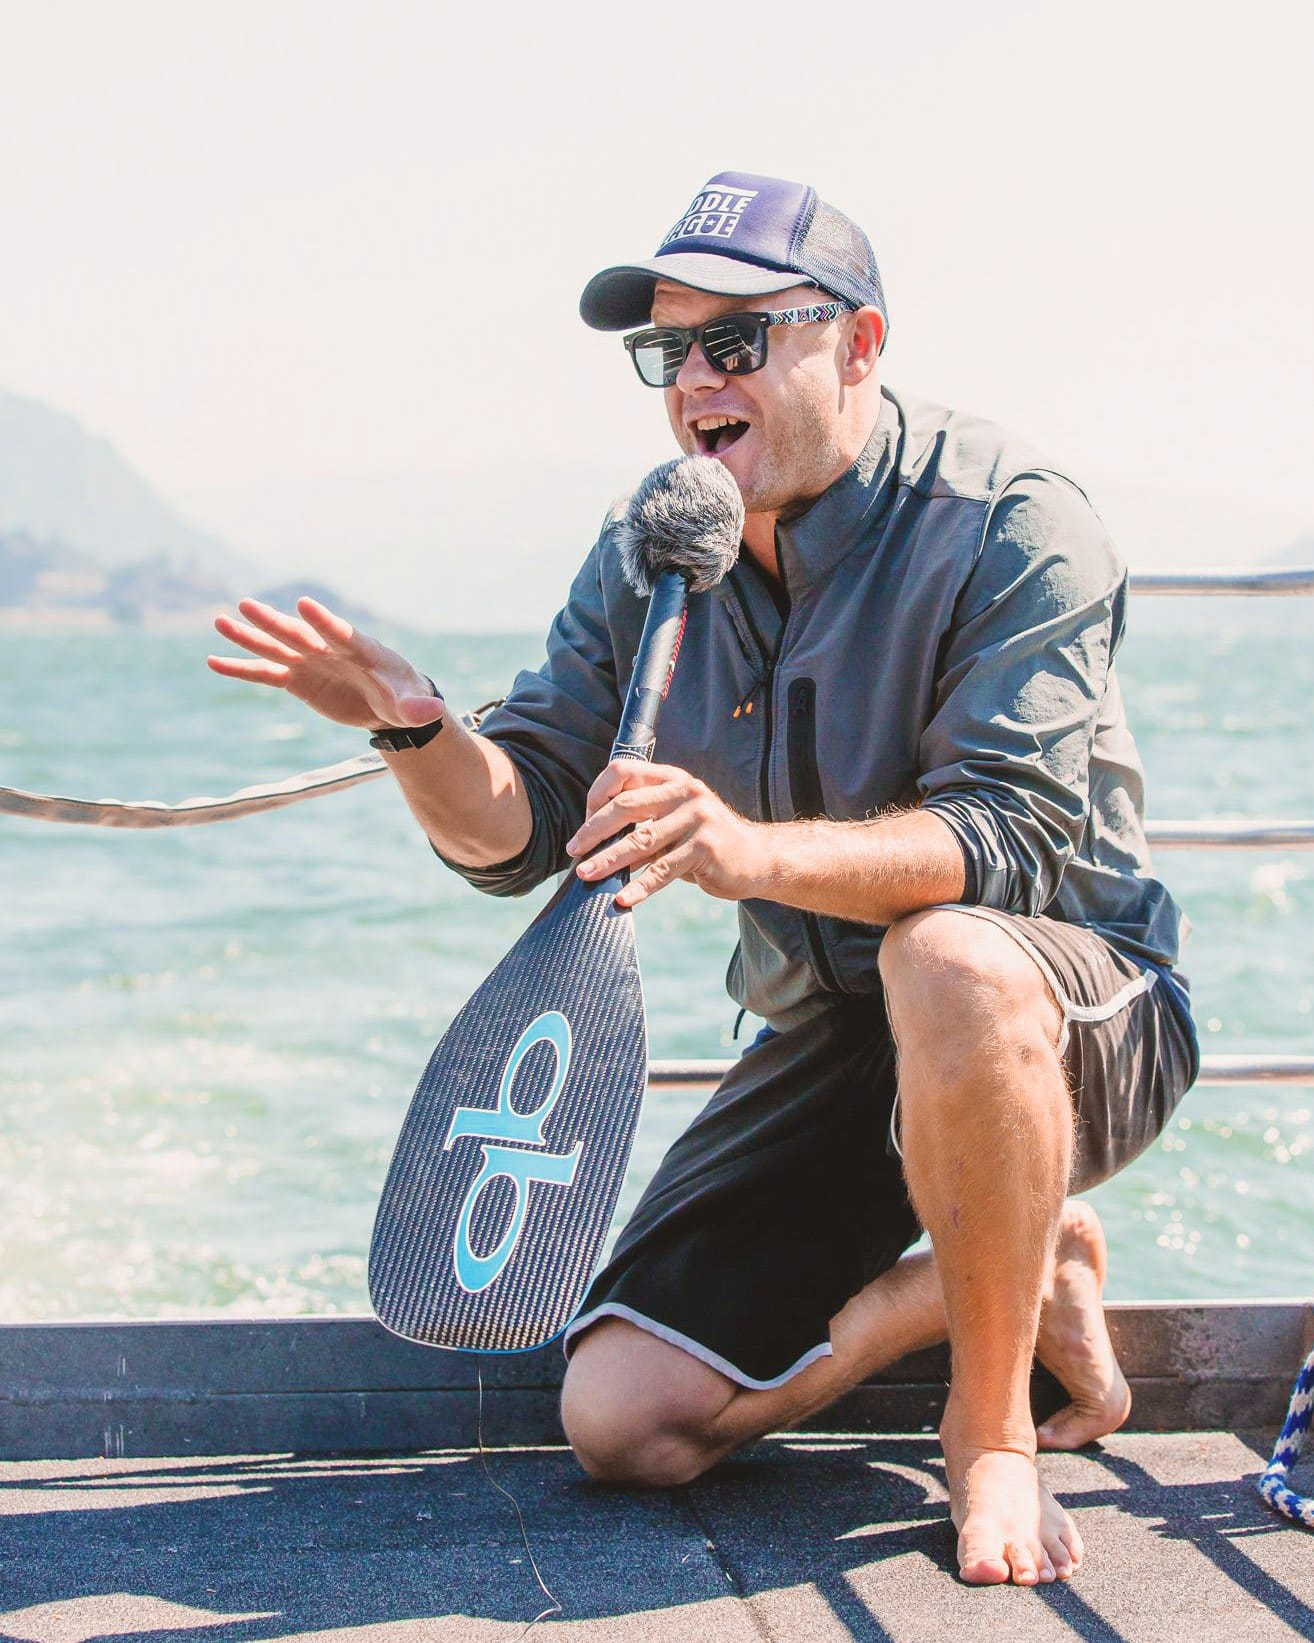 The Paddle League, Olympic SUP Drama, APP World Tour, Pro SUP Surfing and More with Chris Parker of SUPracer.com